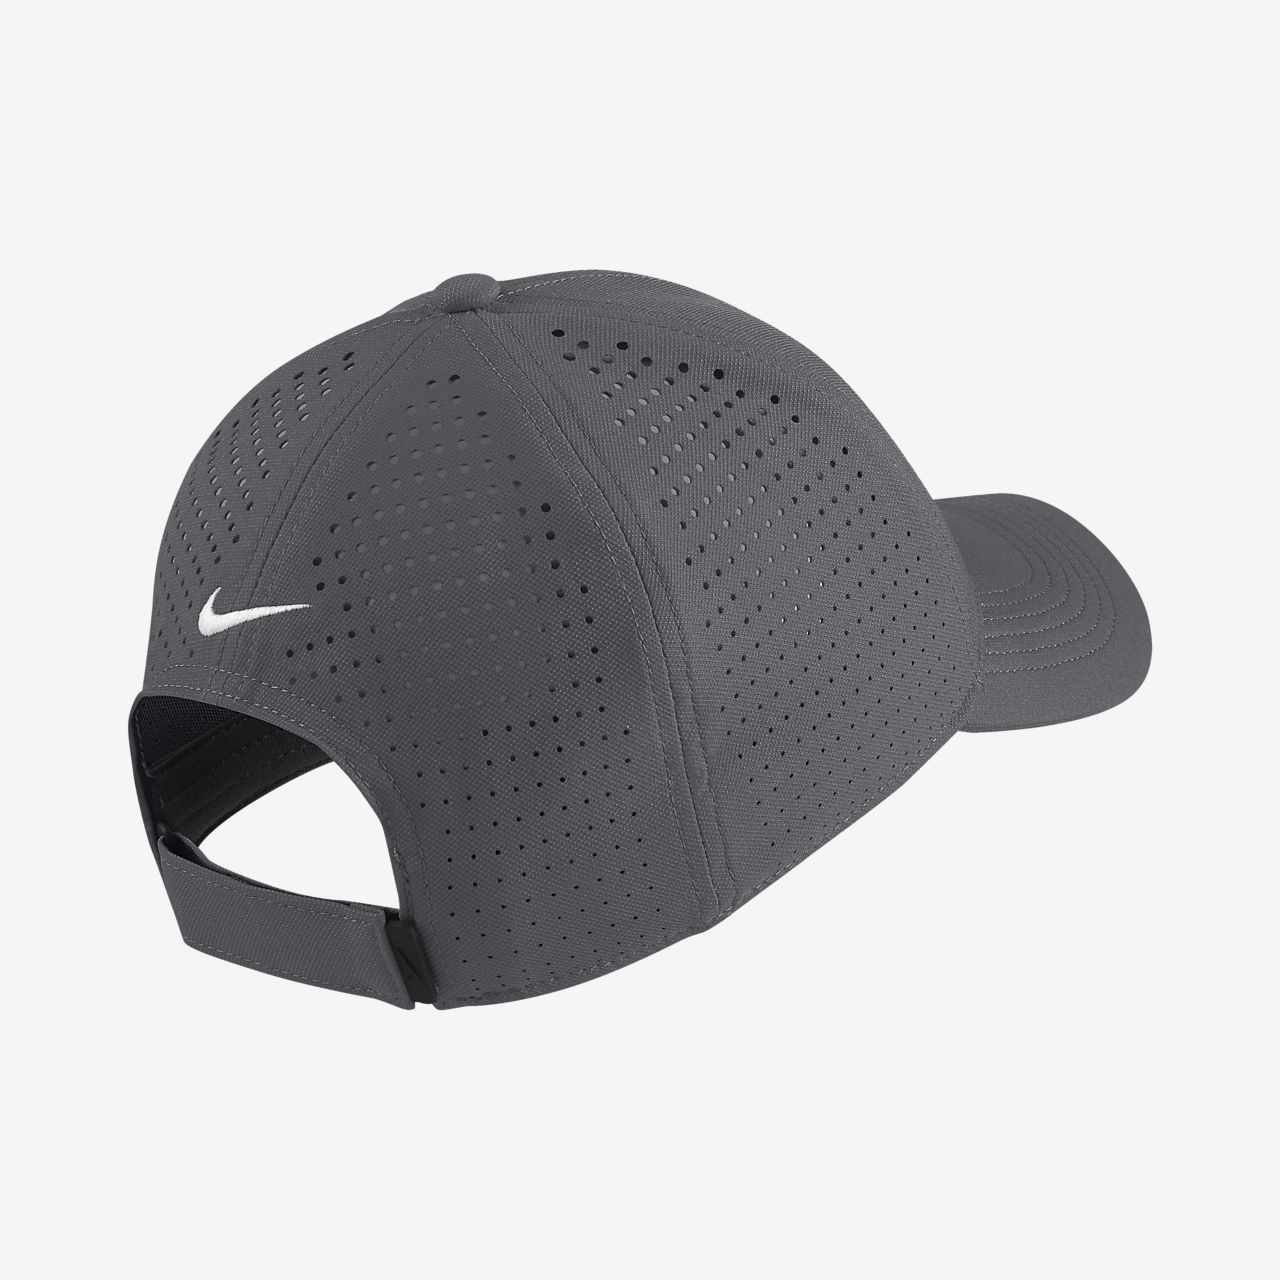 0e5bf69fa41 Nike Legacy 91 Perforated Adjustable Golf Hat. Nike.com